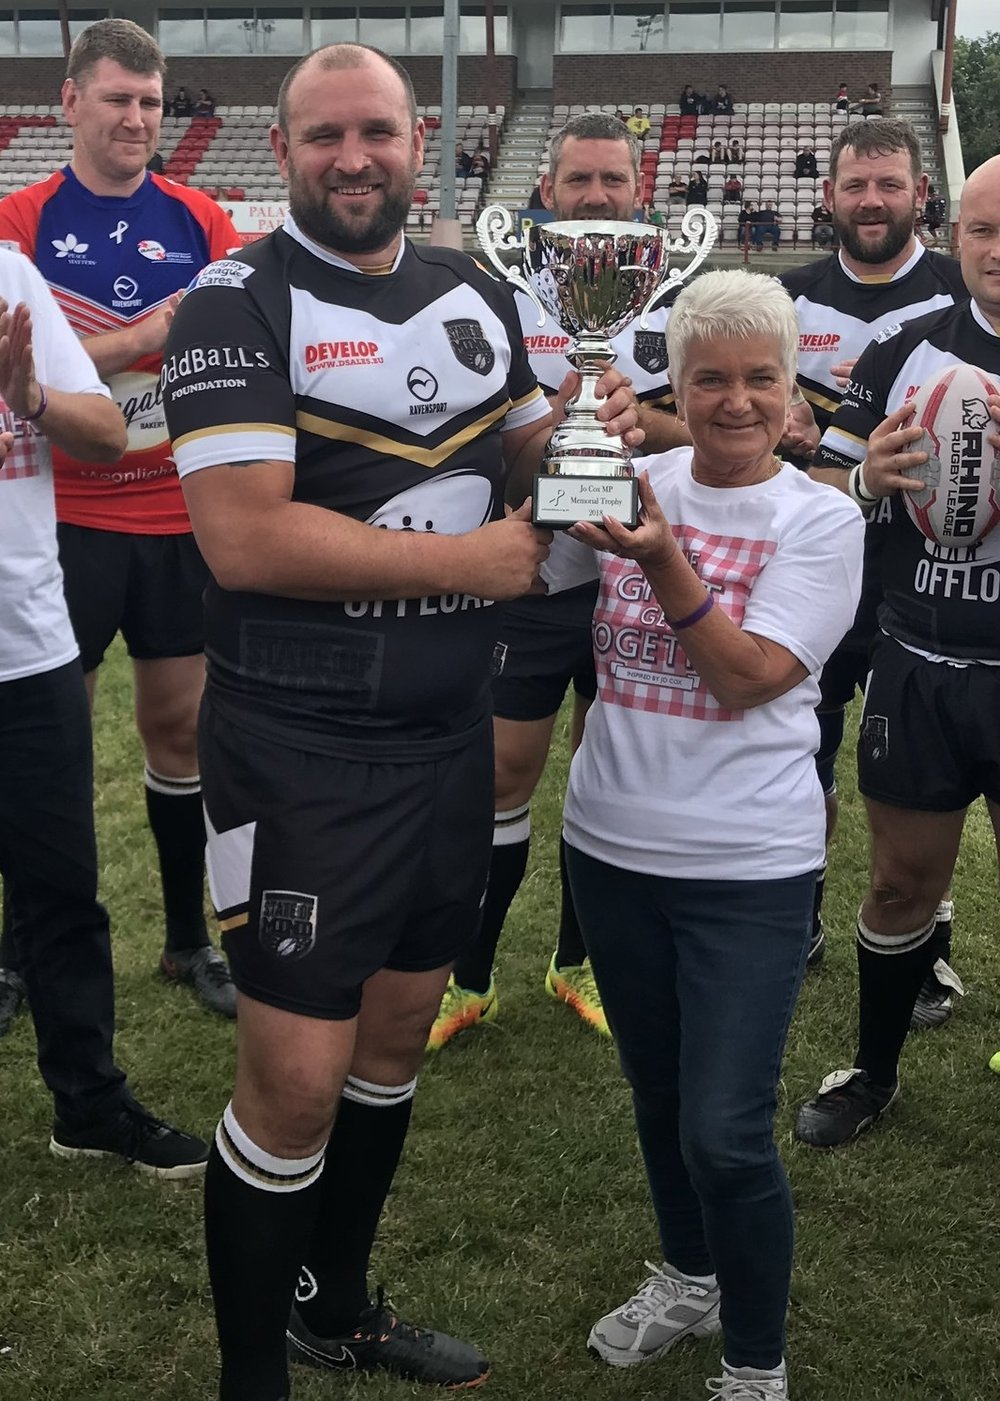 Jo Cox's Mother, Jean Leadbeater presents the trophy to the winning team on 17th June.